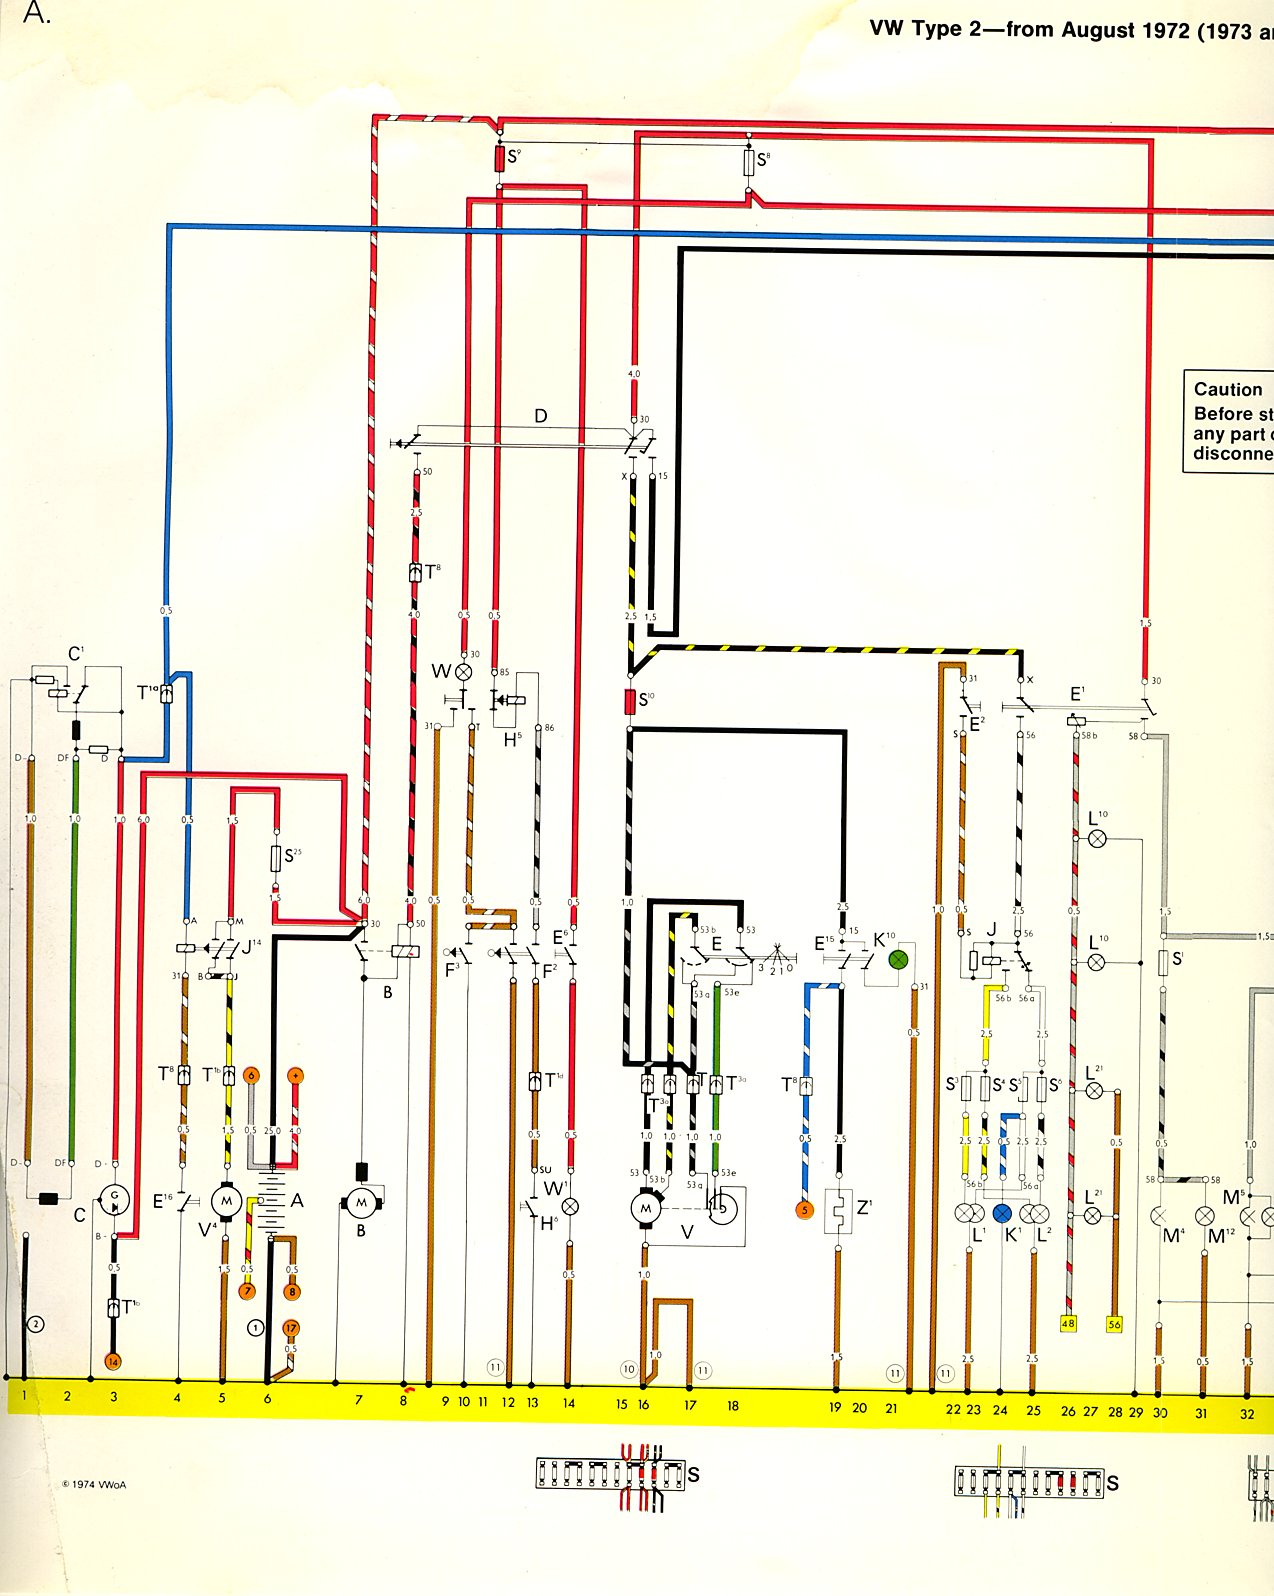 baybus_7374a vw bus wiring diagram 1965 vw bus wiring diagram \u2022 wiring diagrams 1970 vw bug wiring diagram at crackthecode.co